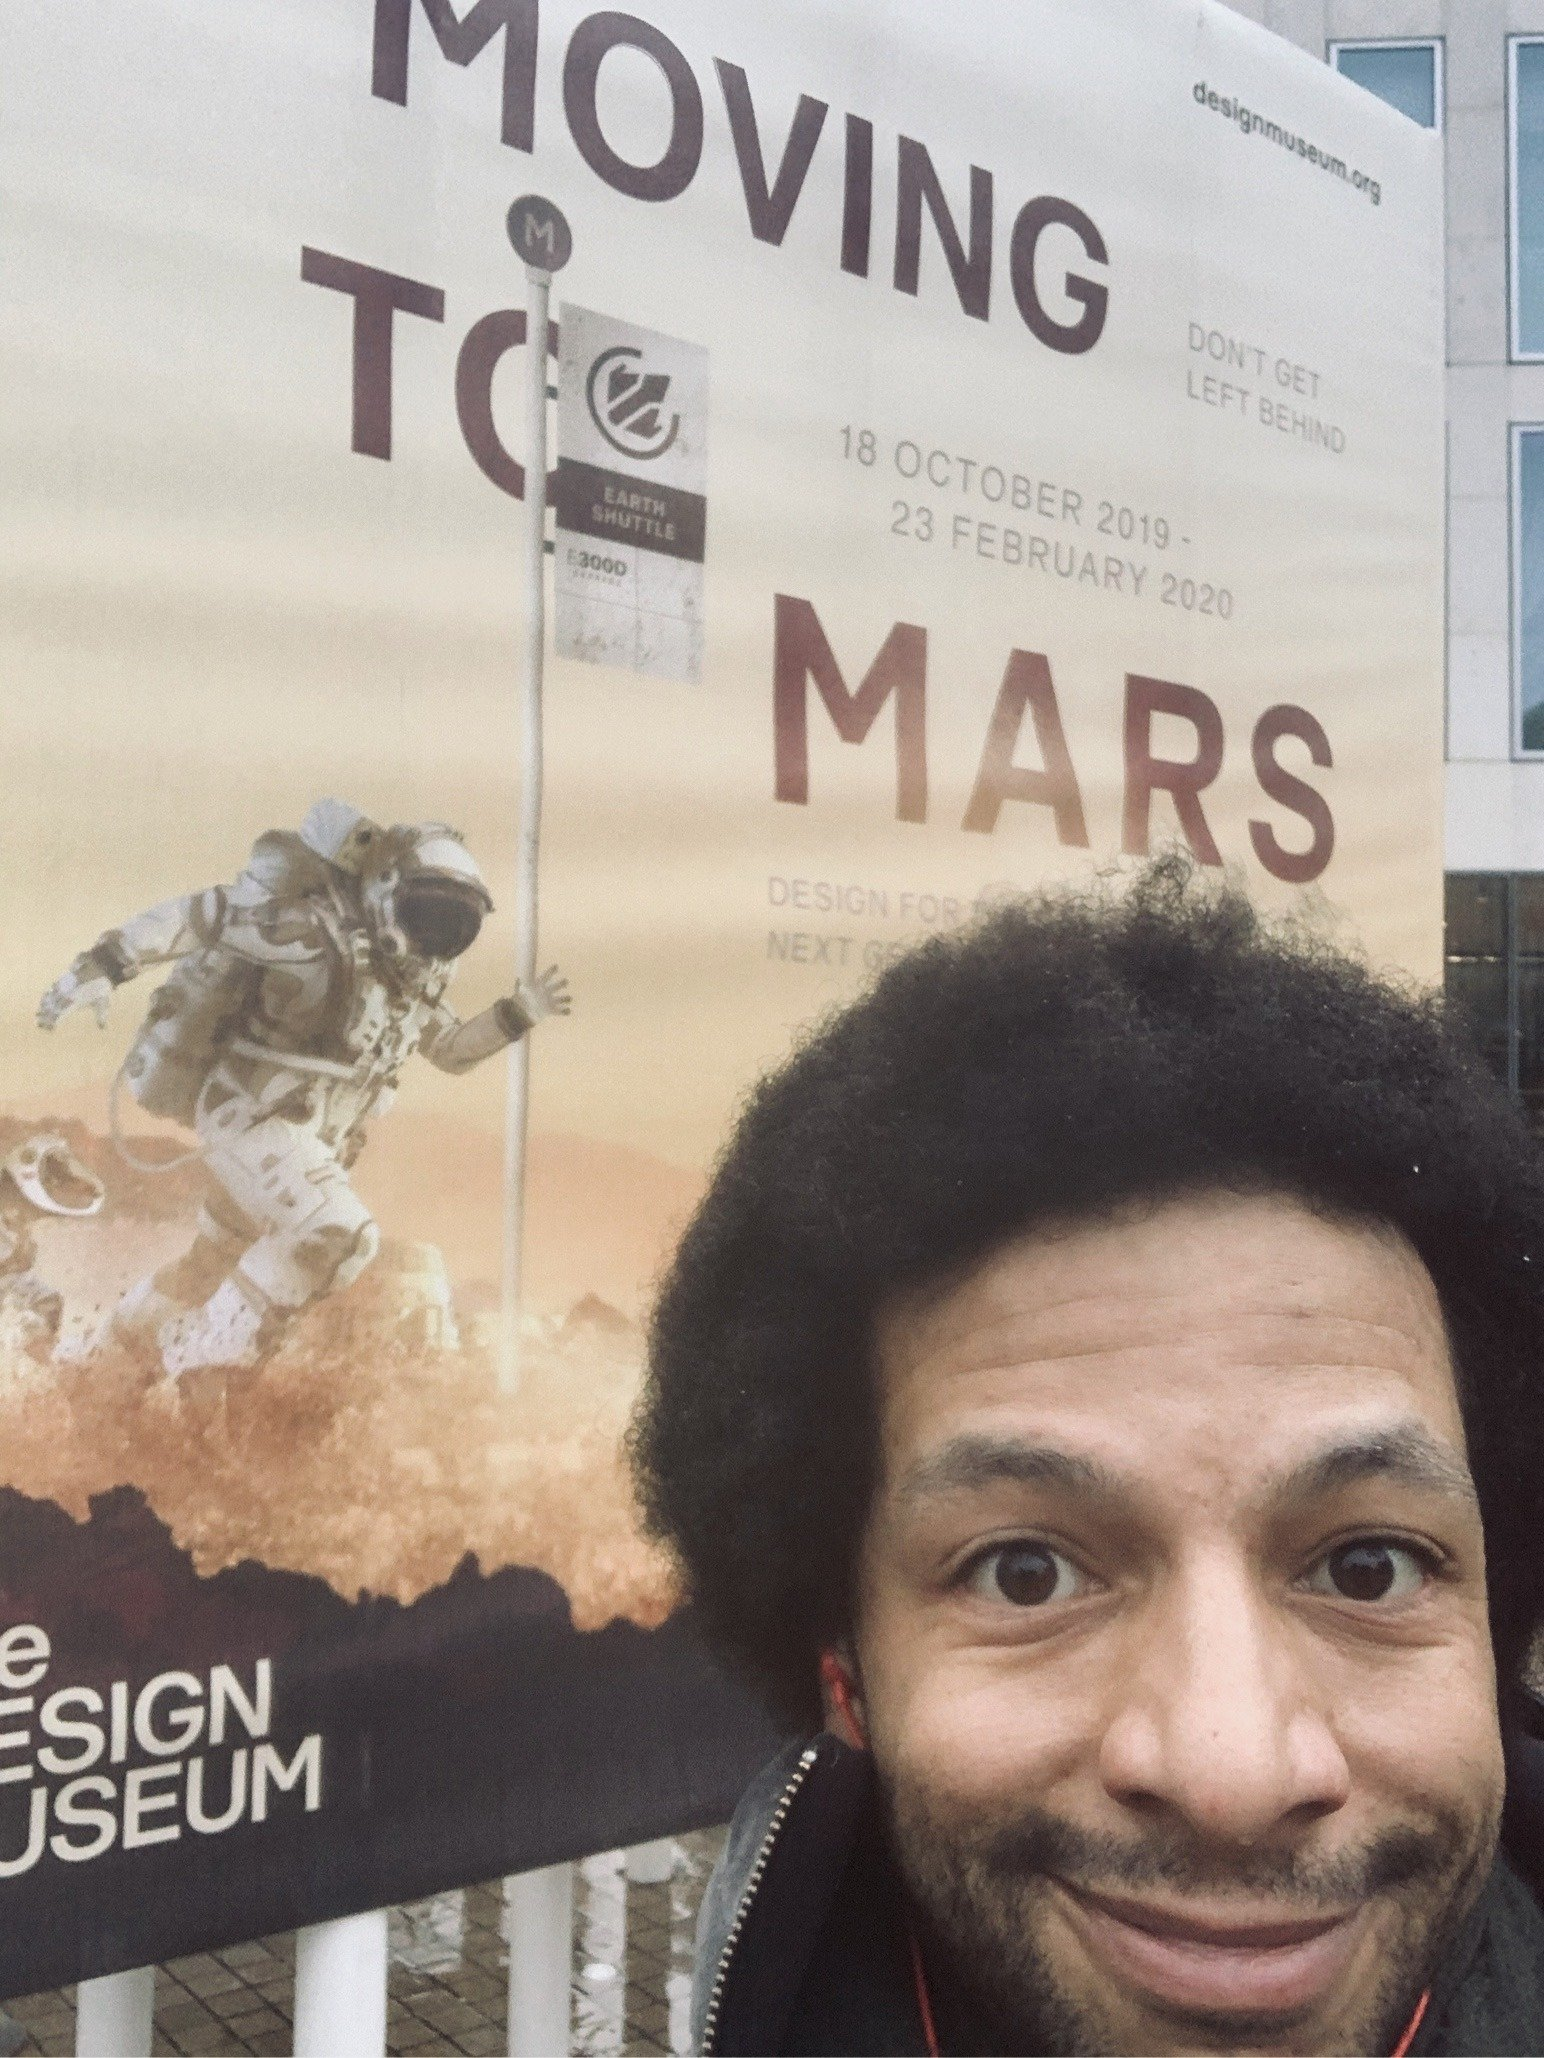 public space events moving to mars exhibition